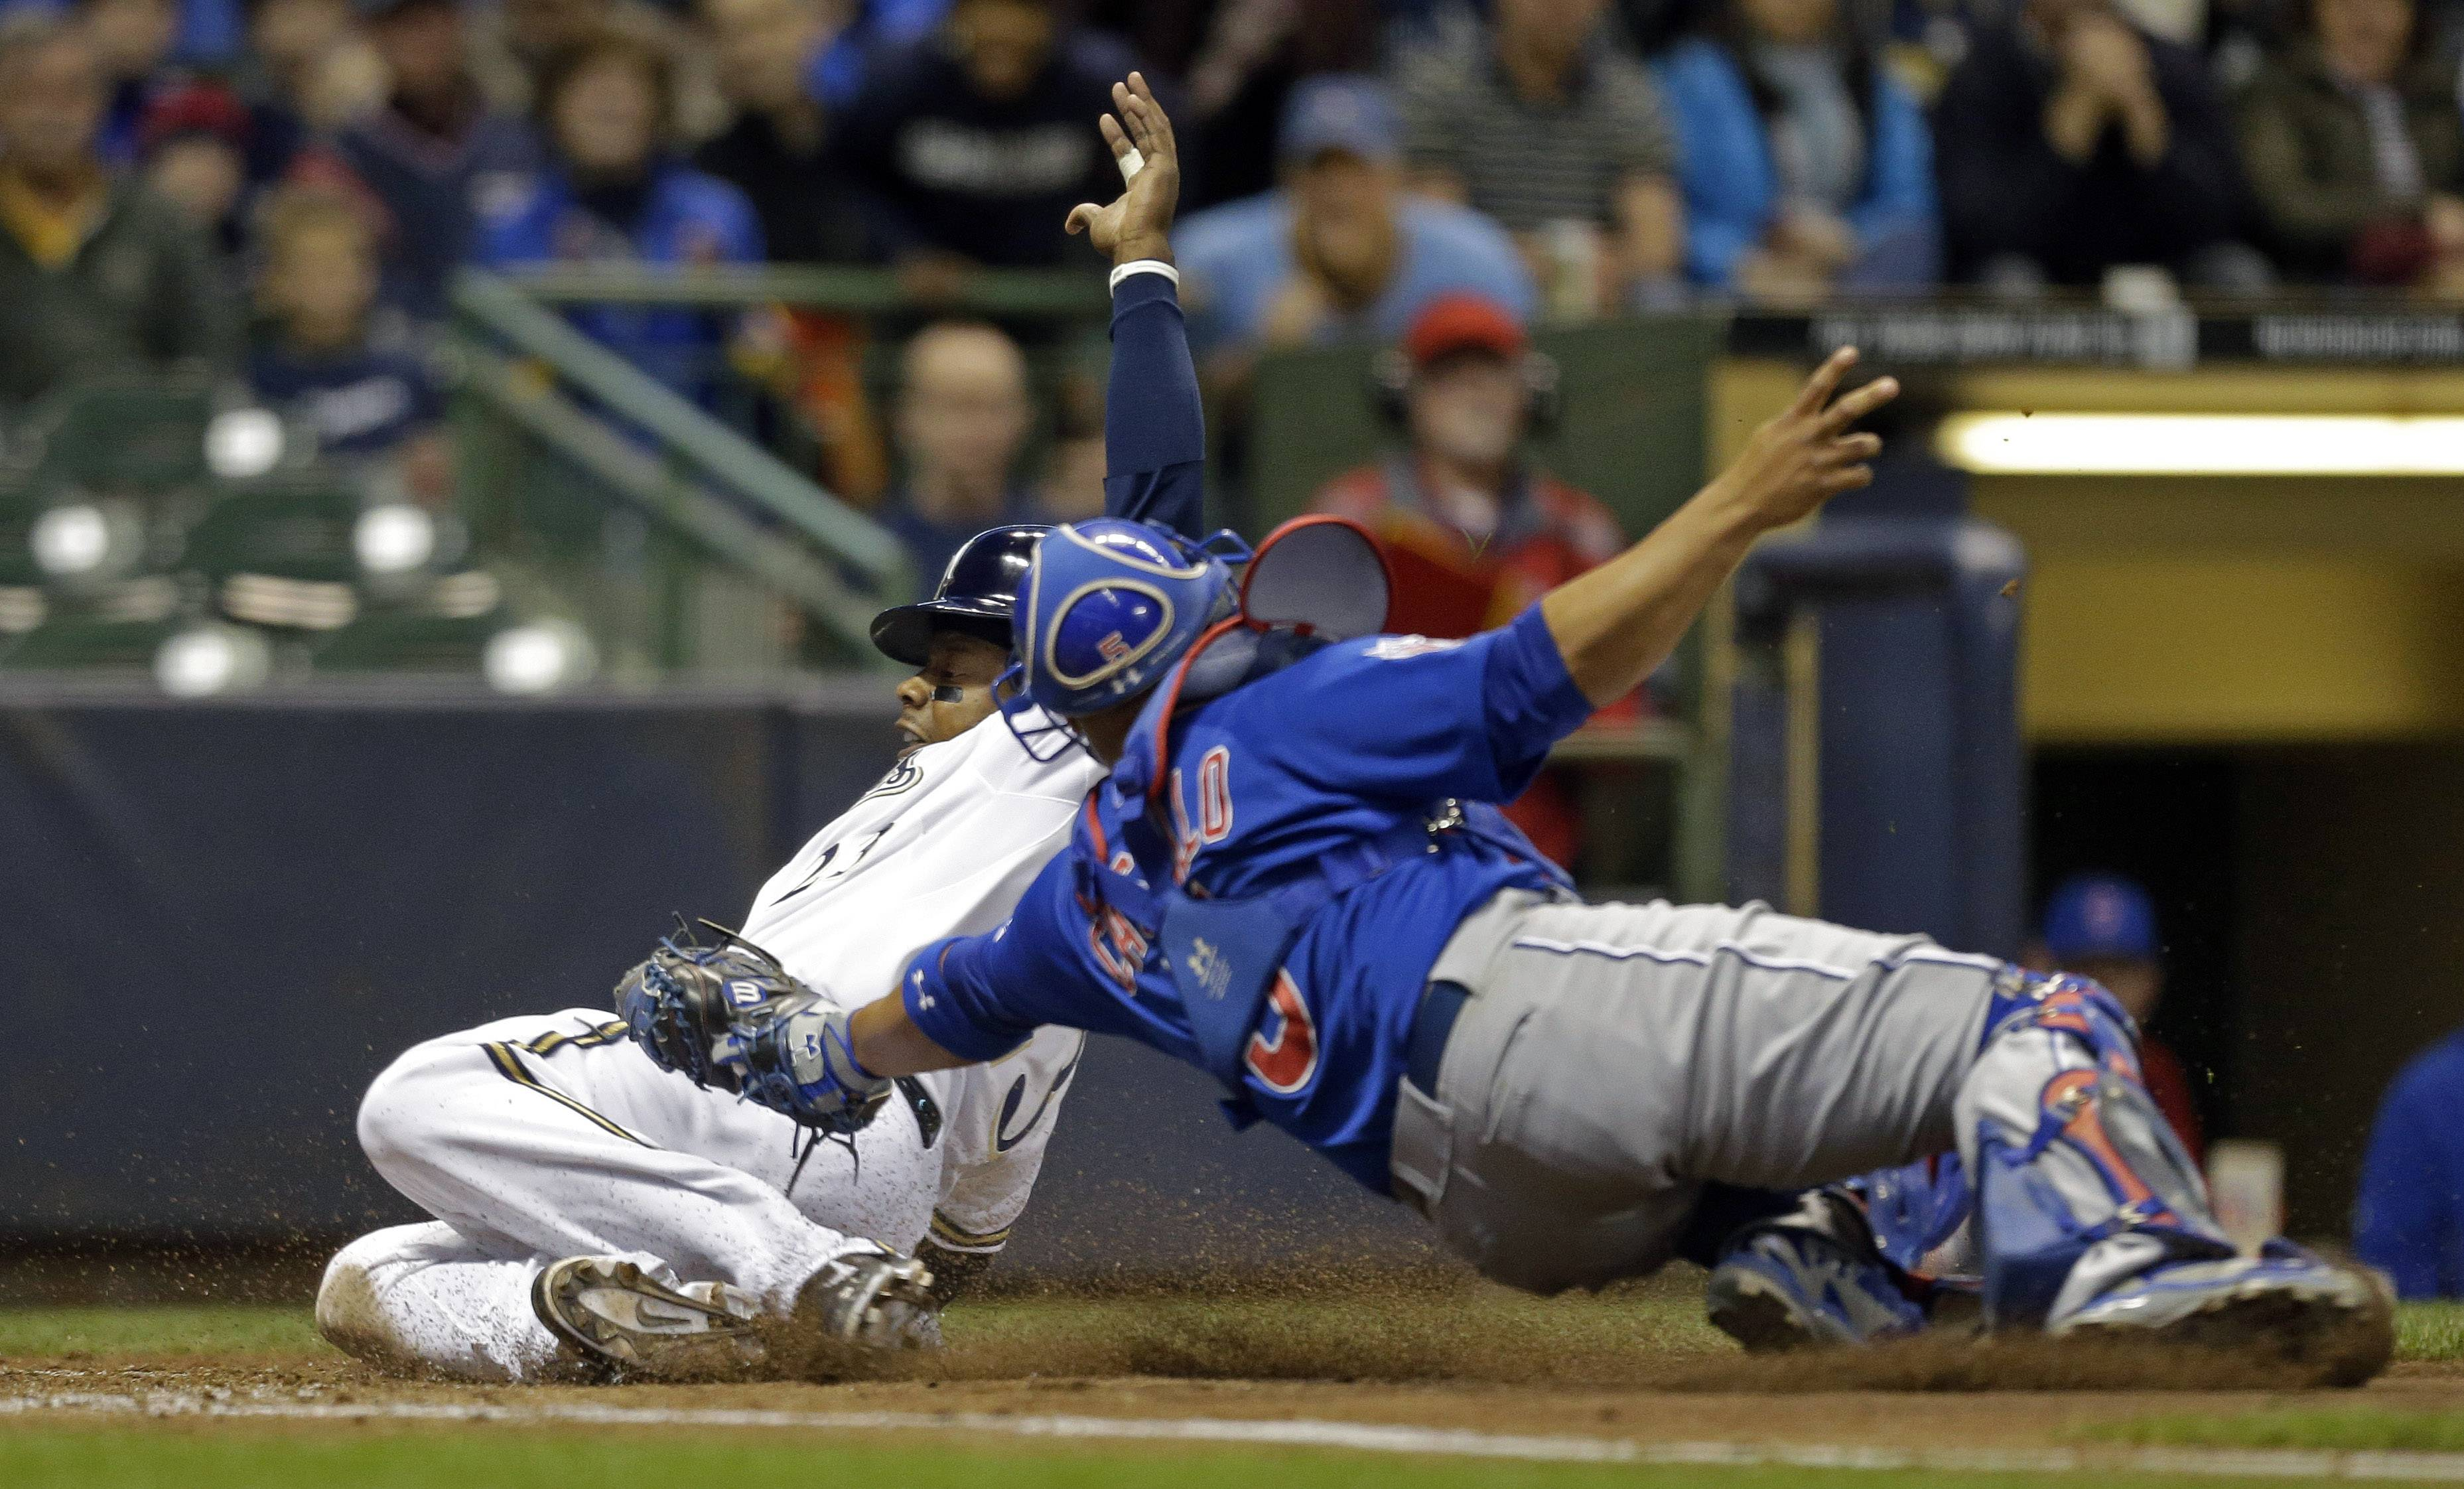 Chicago Cubs catcher Welington Castillo, right, tags out Milwaukee Brewers' Rickie Weeks during Saturday's game in Milwaukee. The Brewers beat the Cubs 5-3.